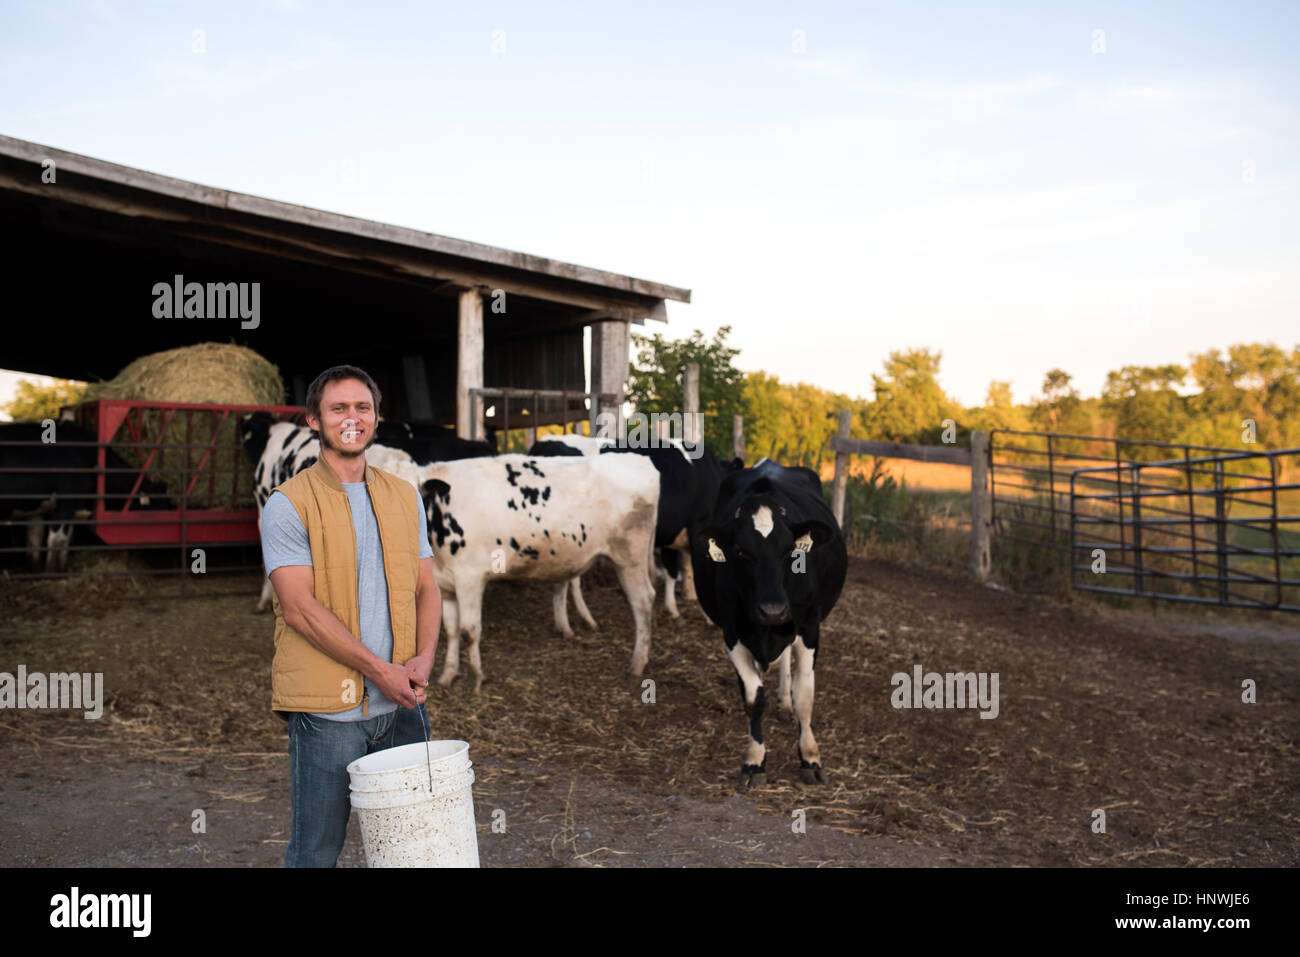 Portrait of farmer on farm, holding animal feed - Stock Image